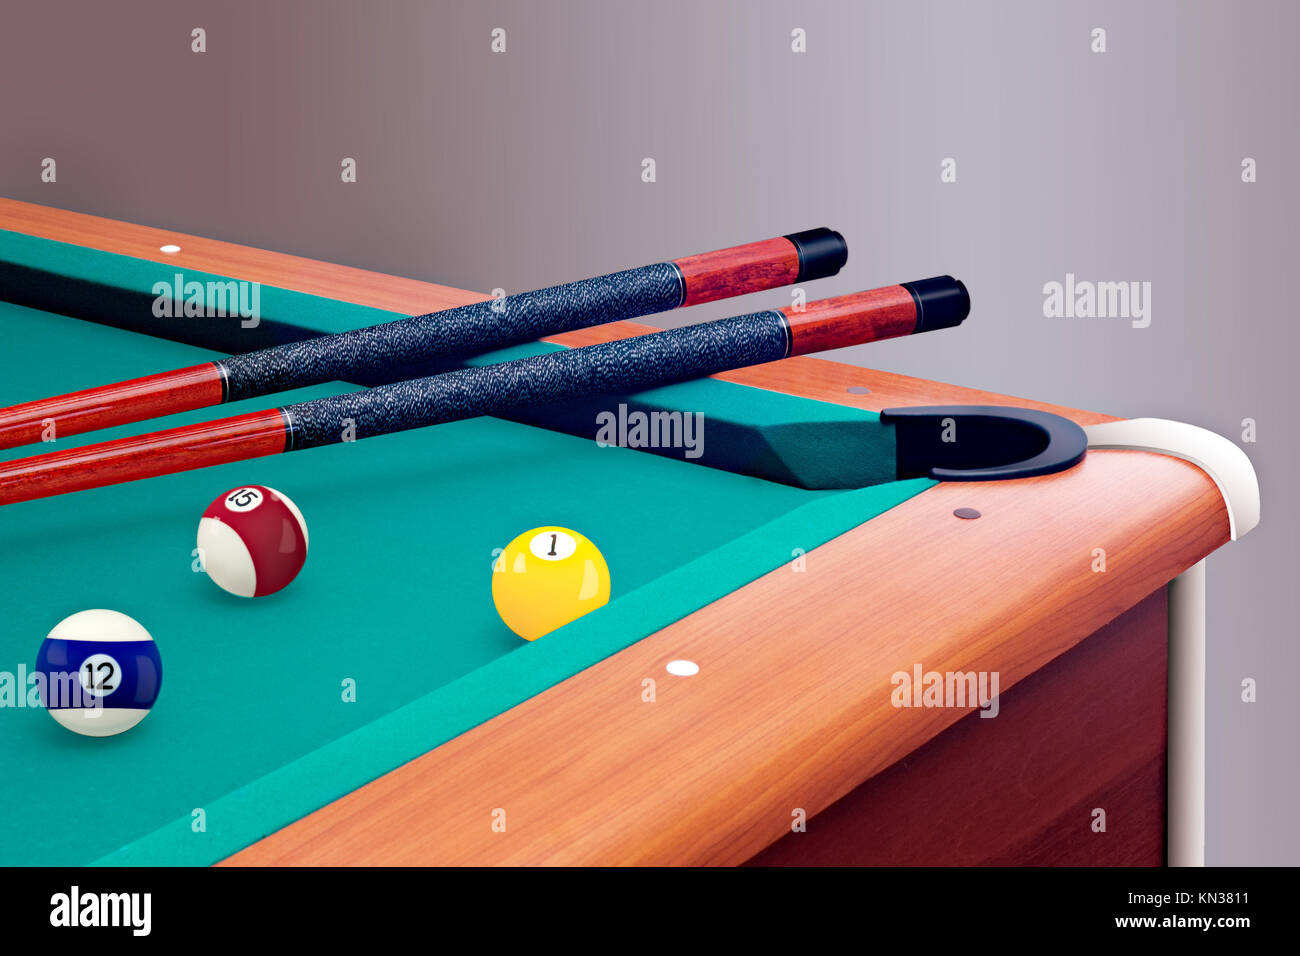 Green billiard table with balls and cues. - Stock Image